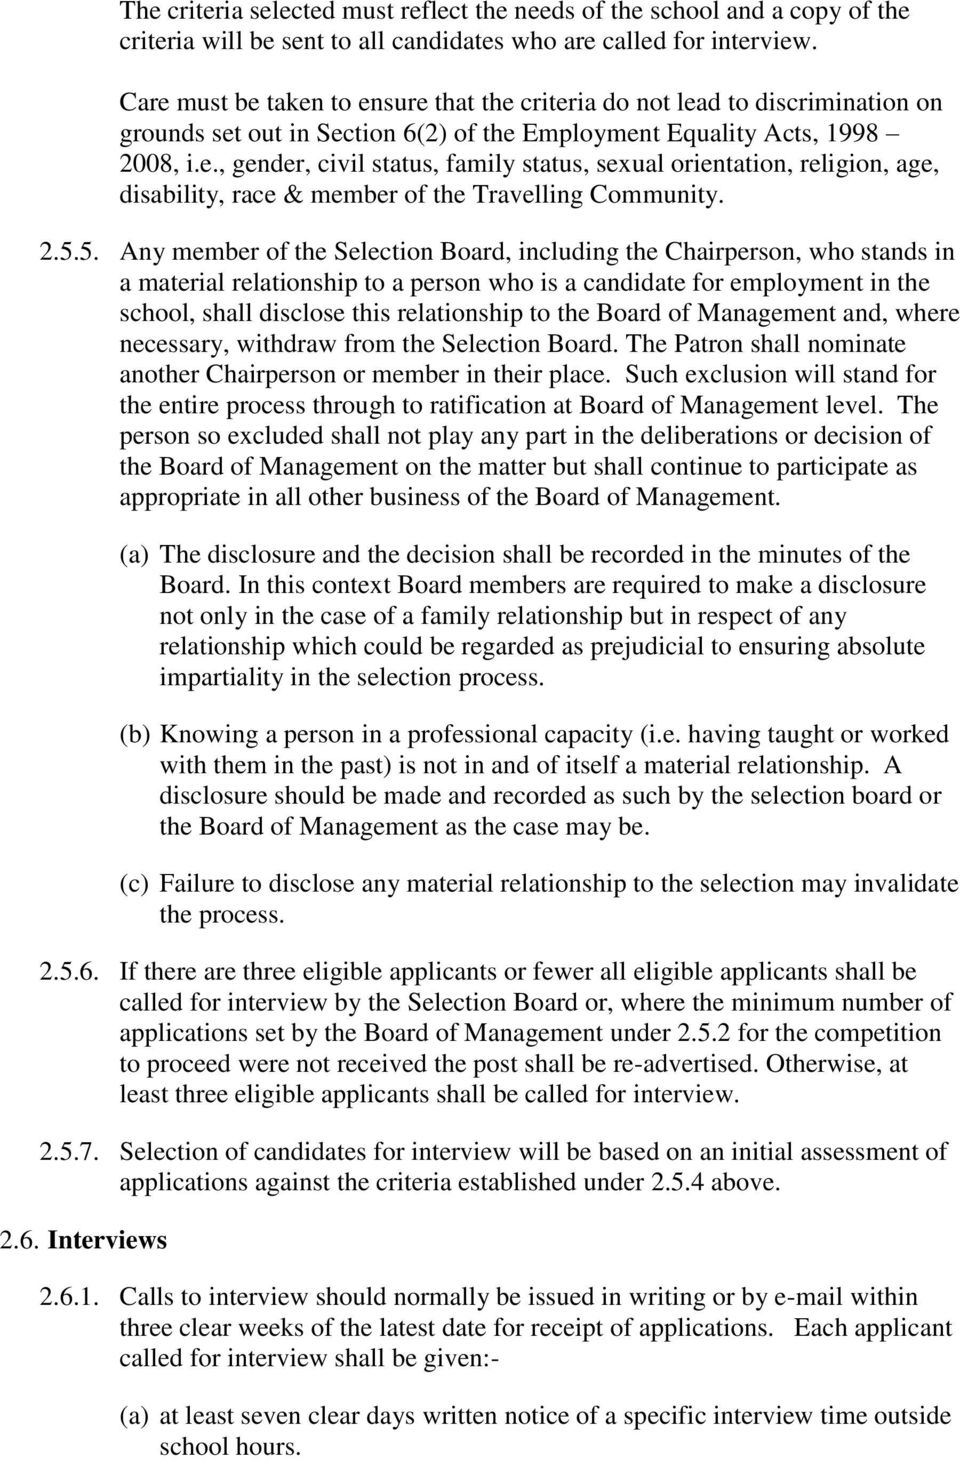 2.5.5. Any member of the Selection Board, including the Chairperson, who stands in a material relationship to a person who is a candidate for employment in the school, shall disclose this